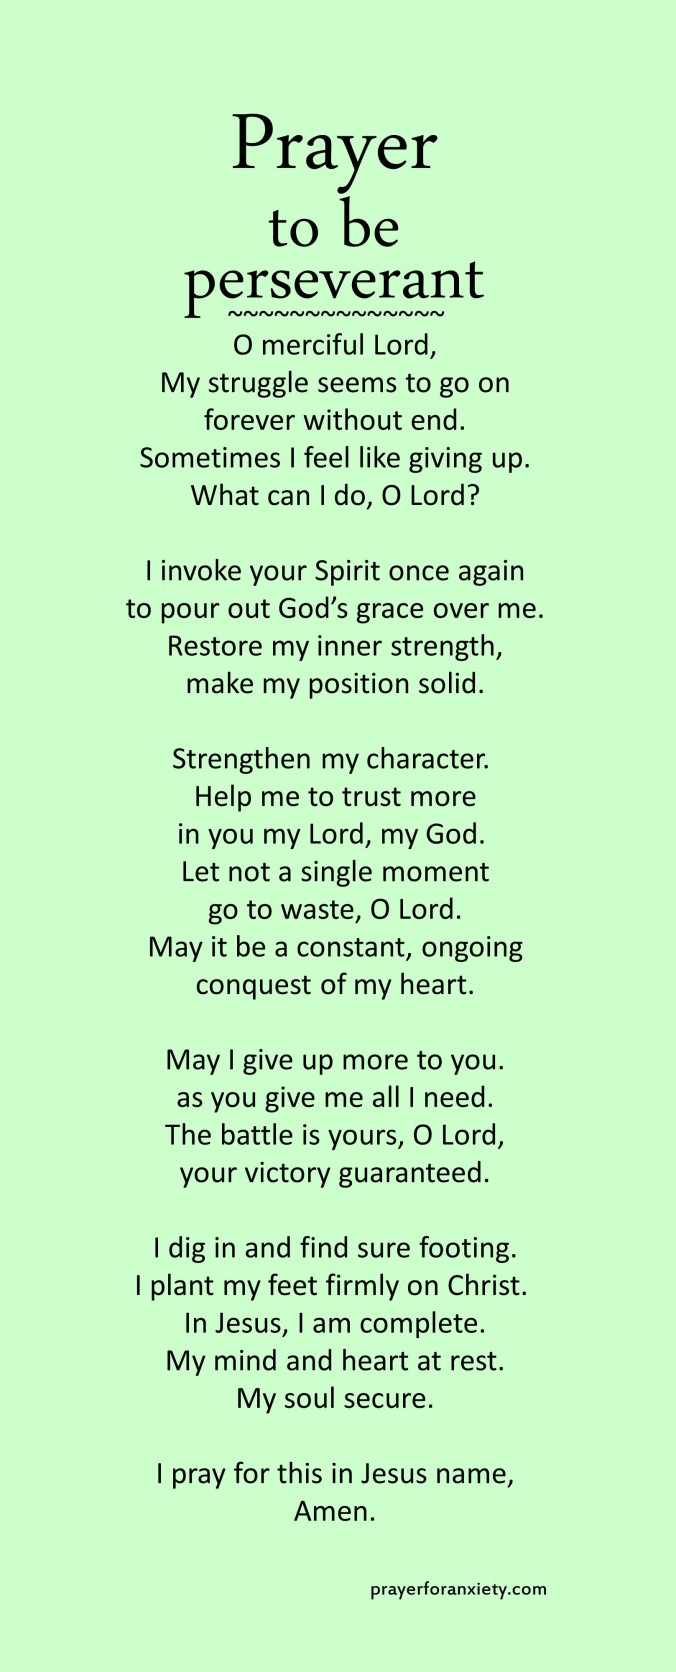 Prayer to be perseverant